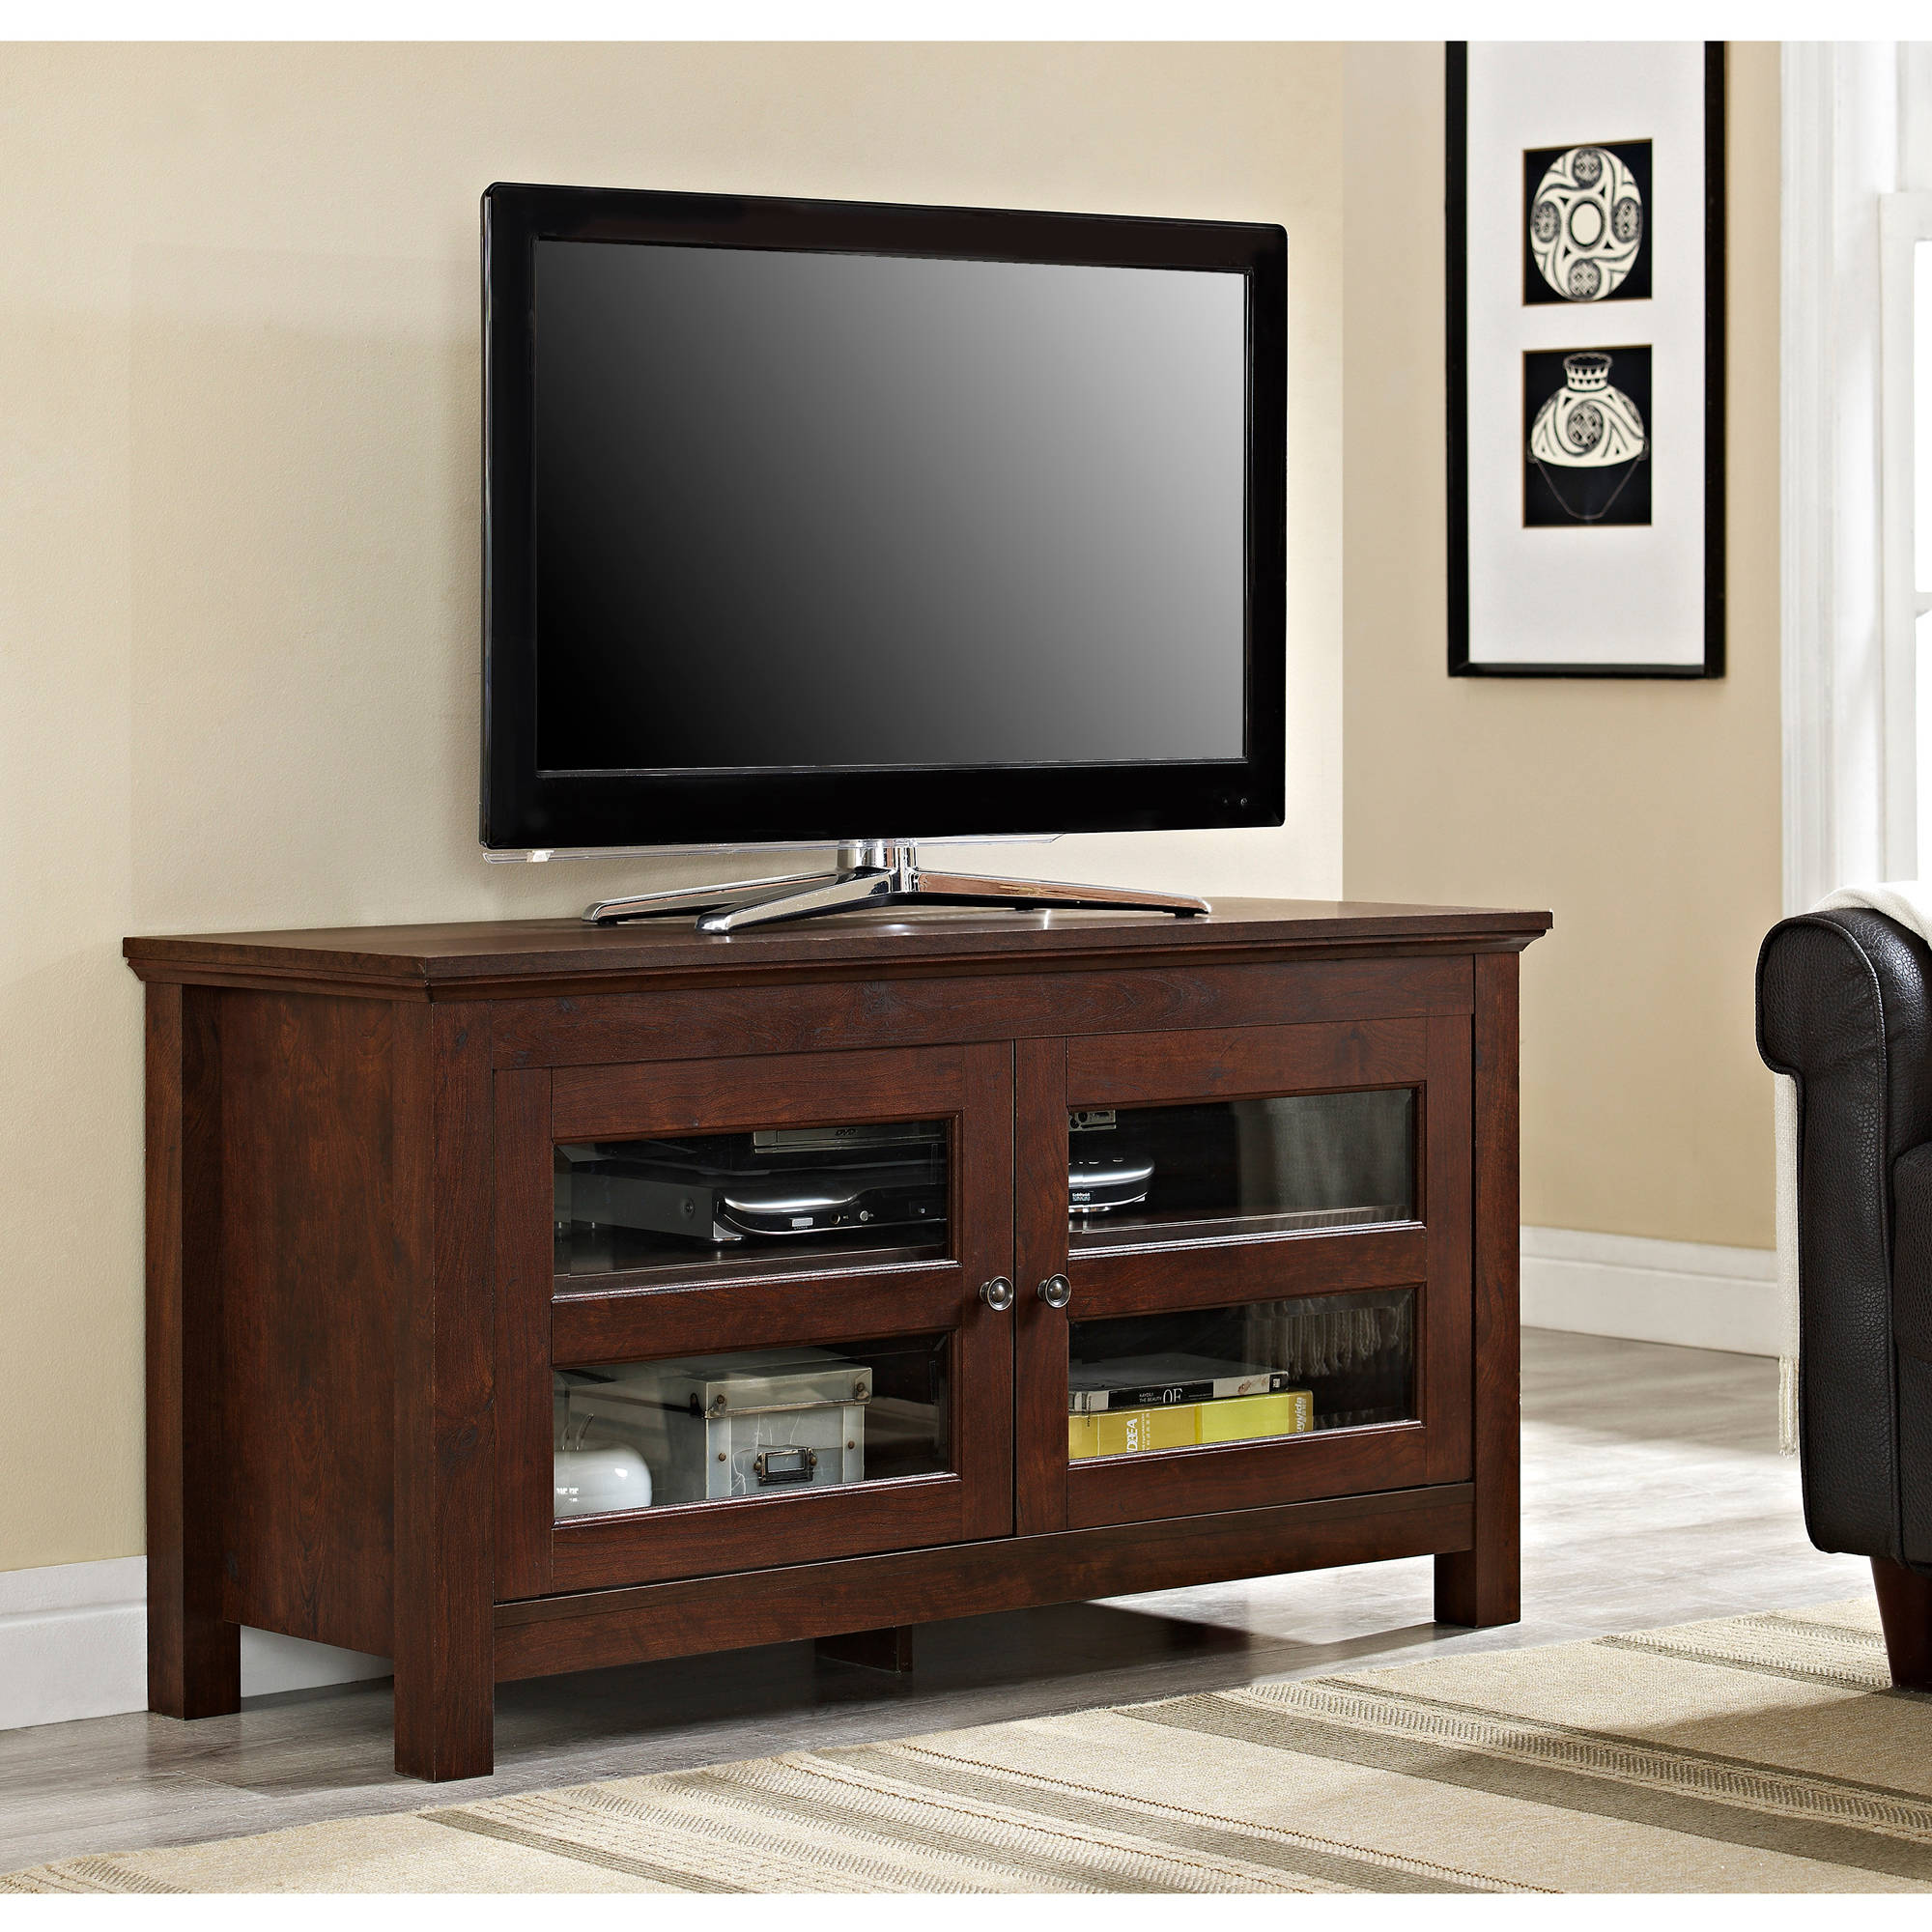 "Walker Edison TV Stand for TVs up to 48"", Multiple Colors"